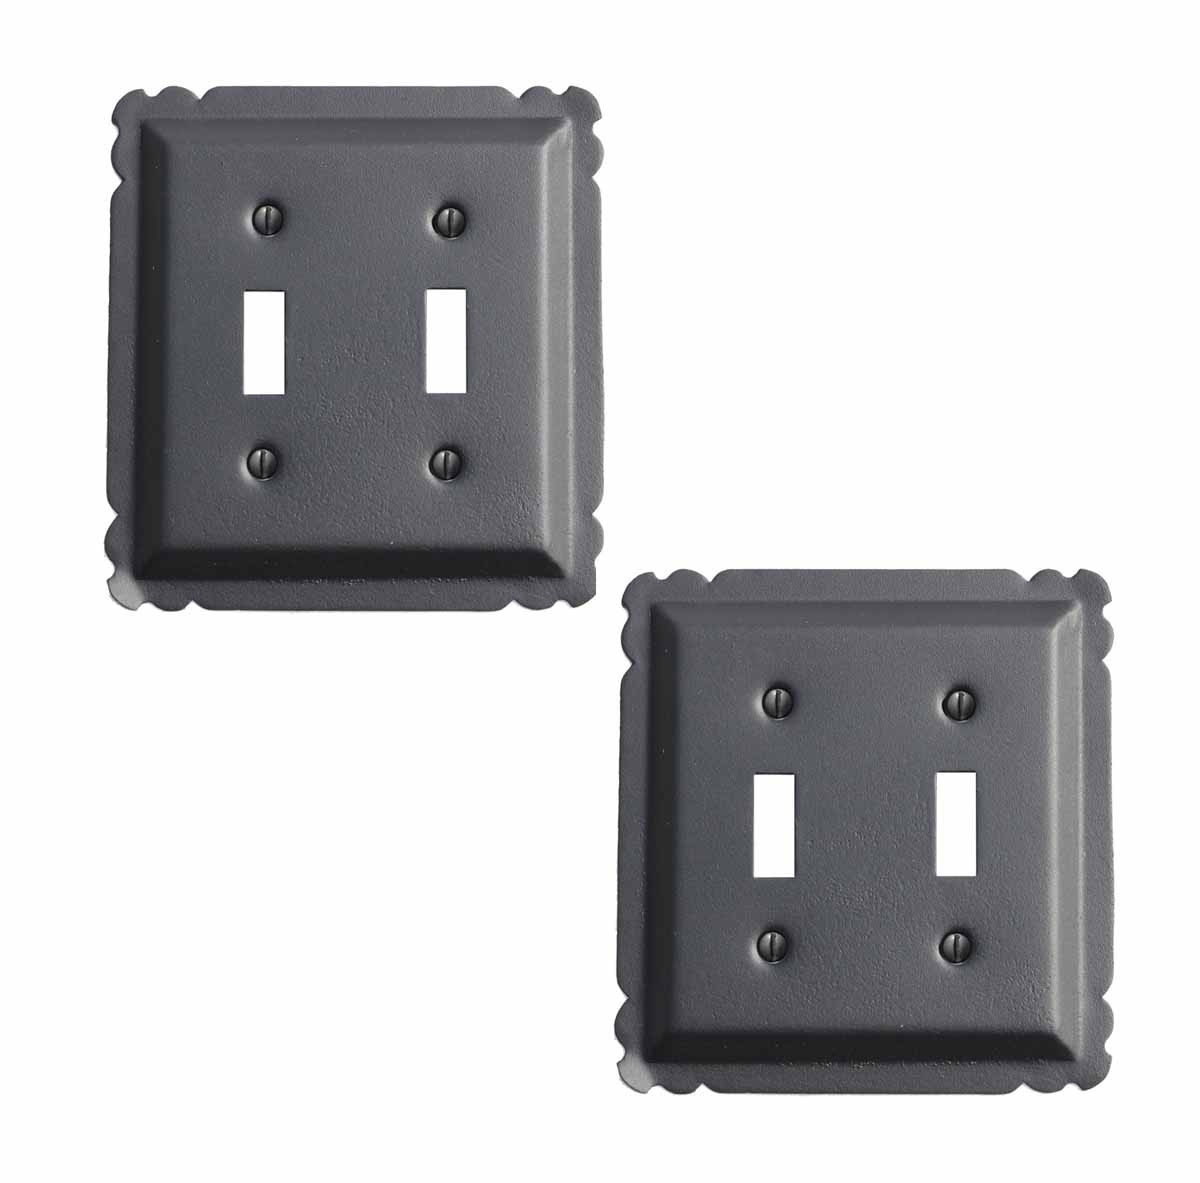 2 Switchplate Black Steel Double Toggle | Renovator's Supply